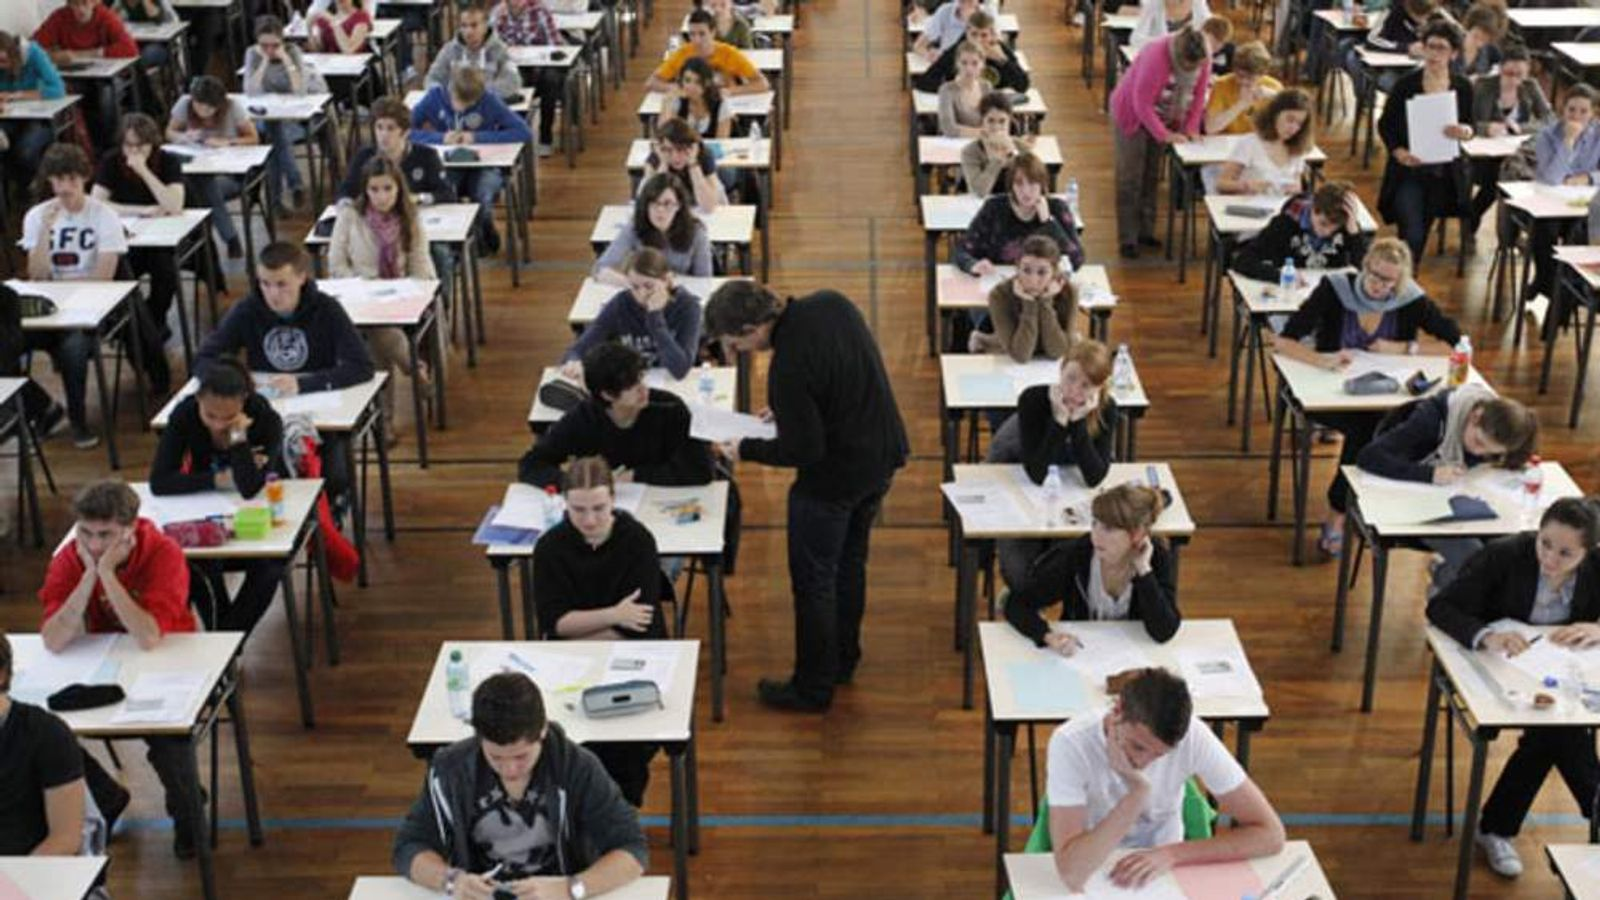 Students sit exams